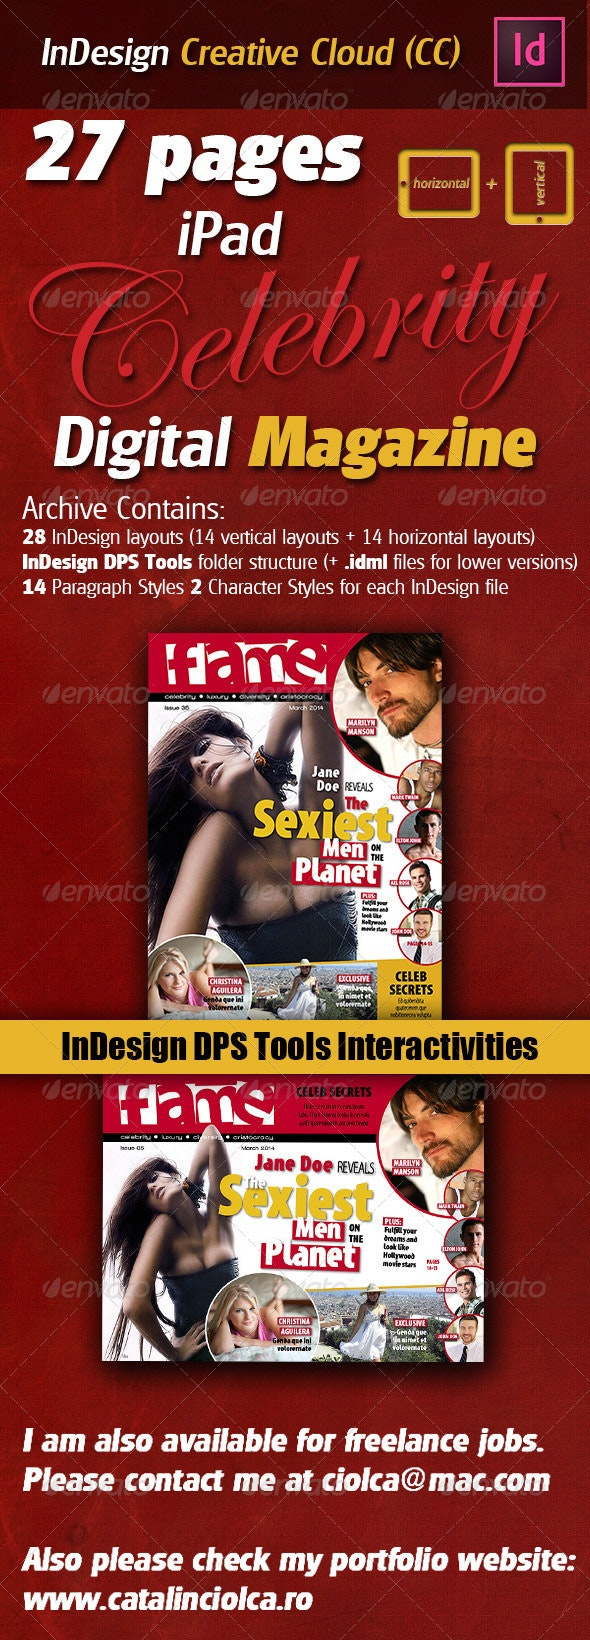 27 Pages iPad Celebrity Digital Magazine - ePublishing